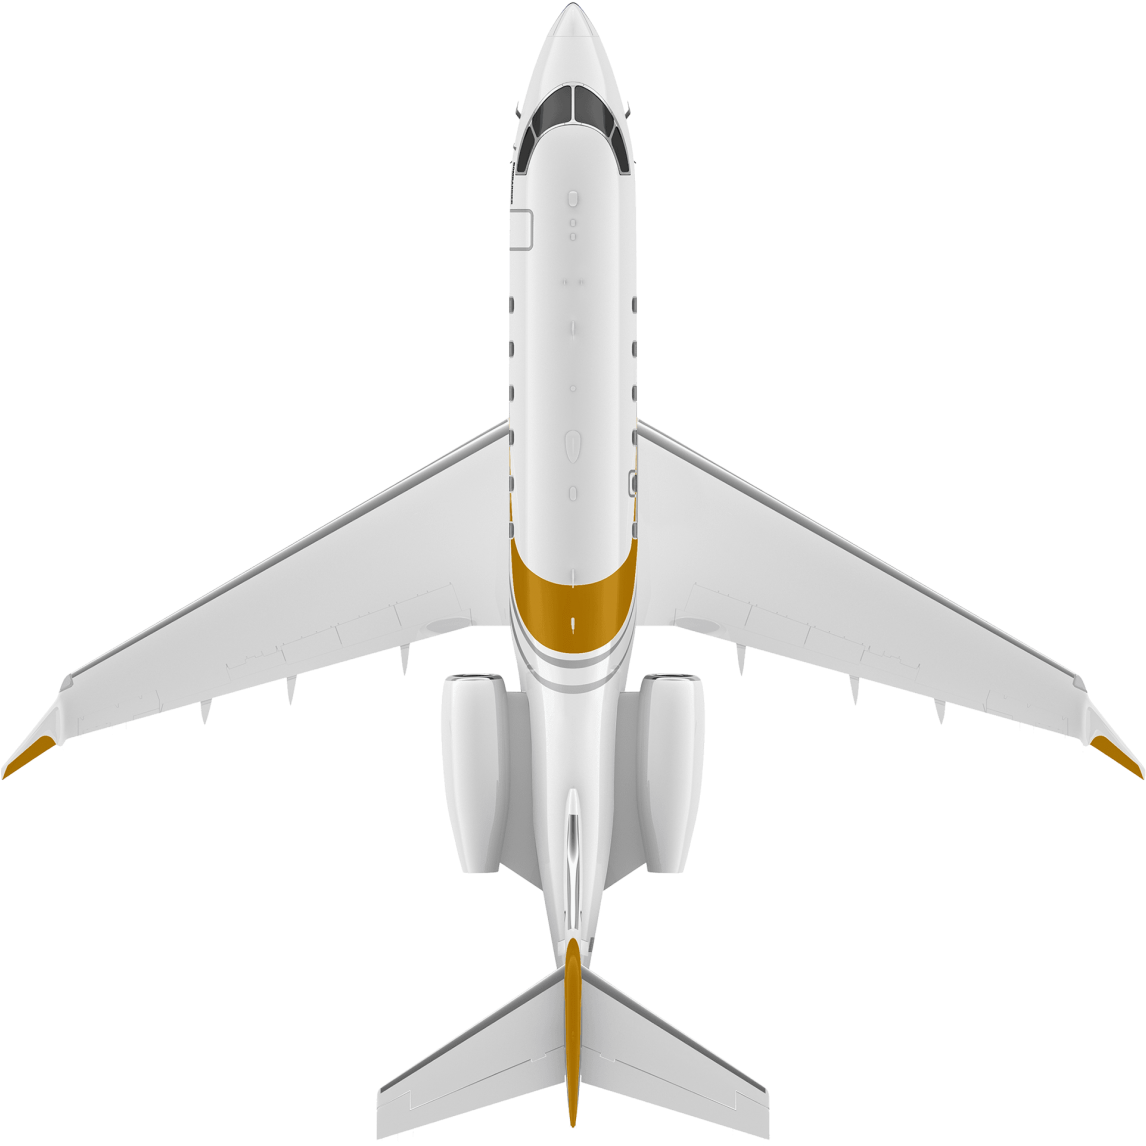 1430 X 1430 15 - Aeroplane Top View Png Clipart (1430x1430), Png Download